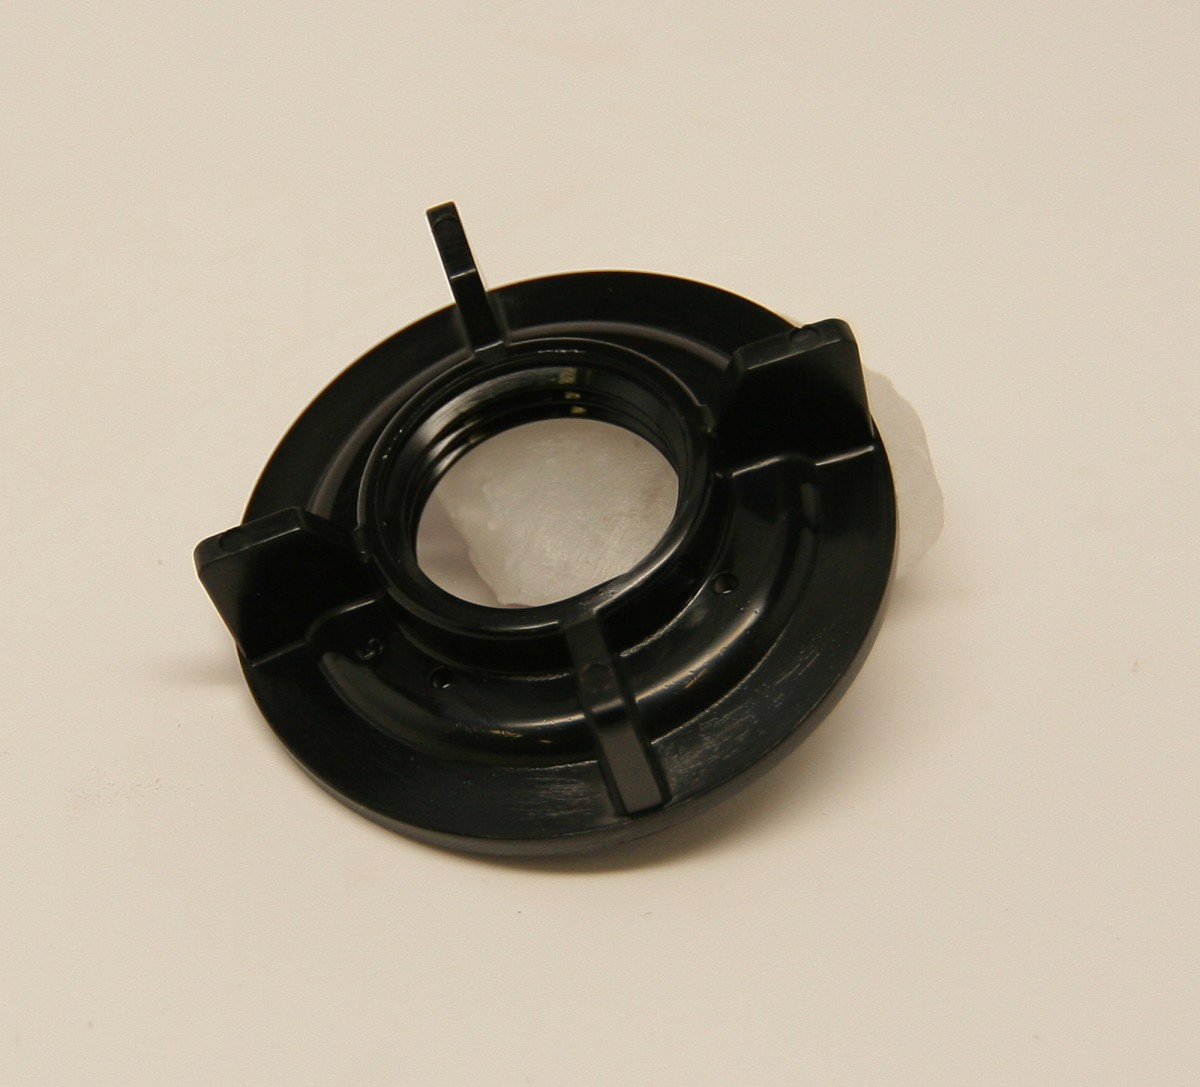 Replacement Perlick Locking Nut, C31990 | Perlick Refrigeration ...